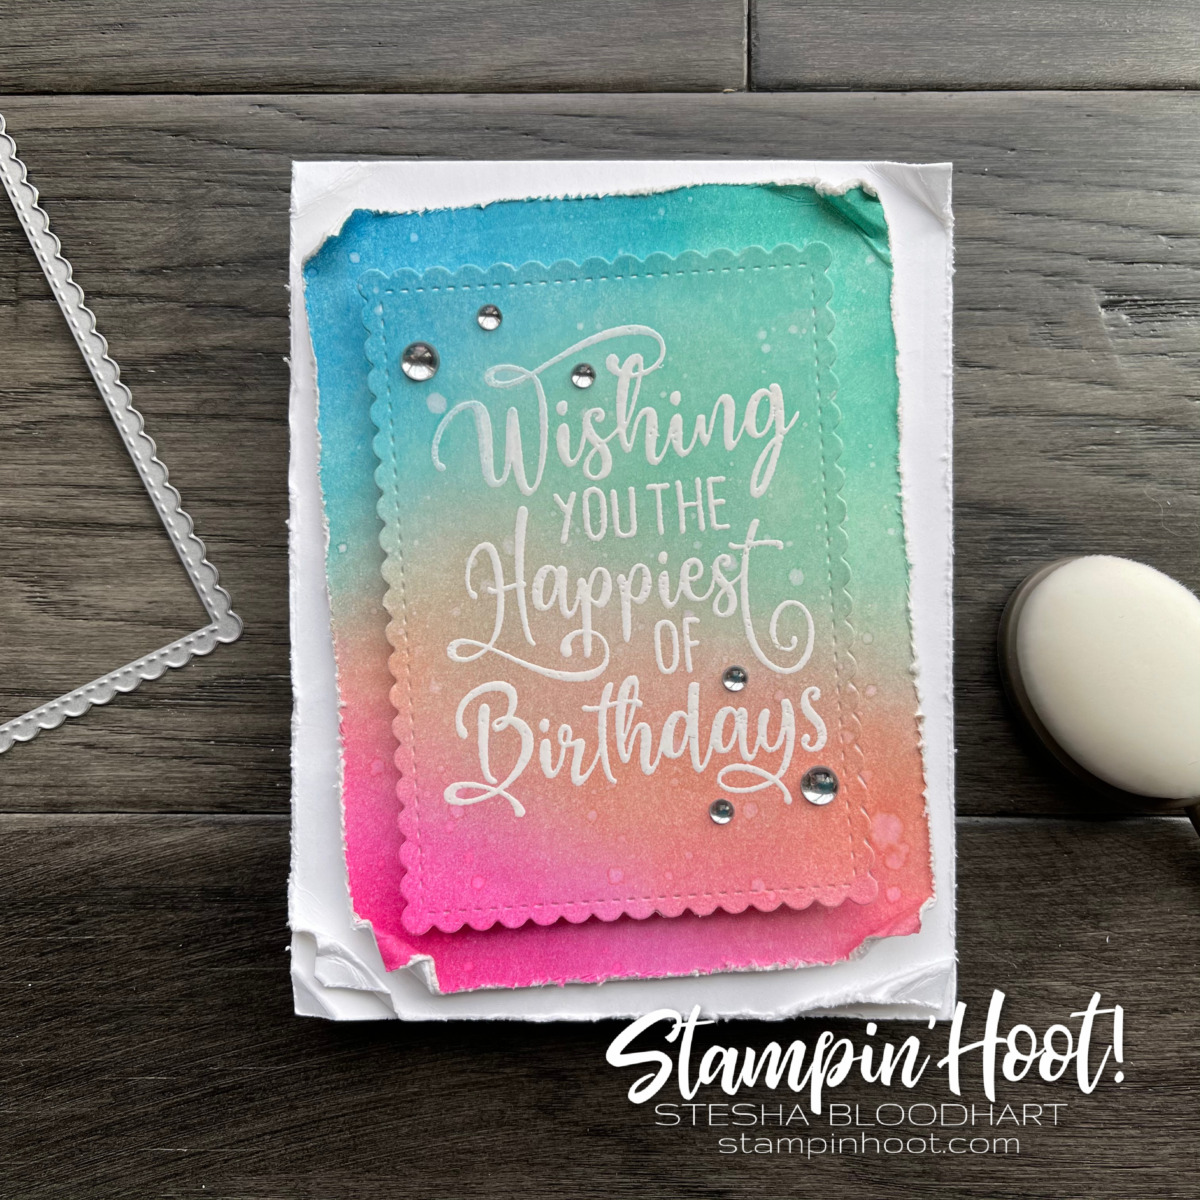 Create this card using the Happiest of Birthdays Stamp Set. Card by Stesha Bloodhart, Stampin' Hoot!